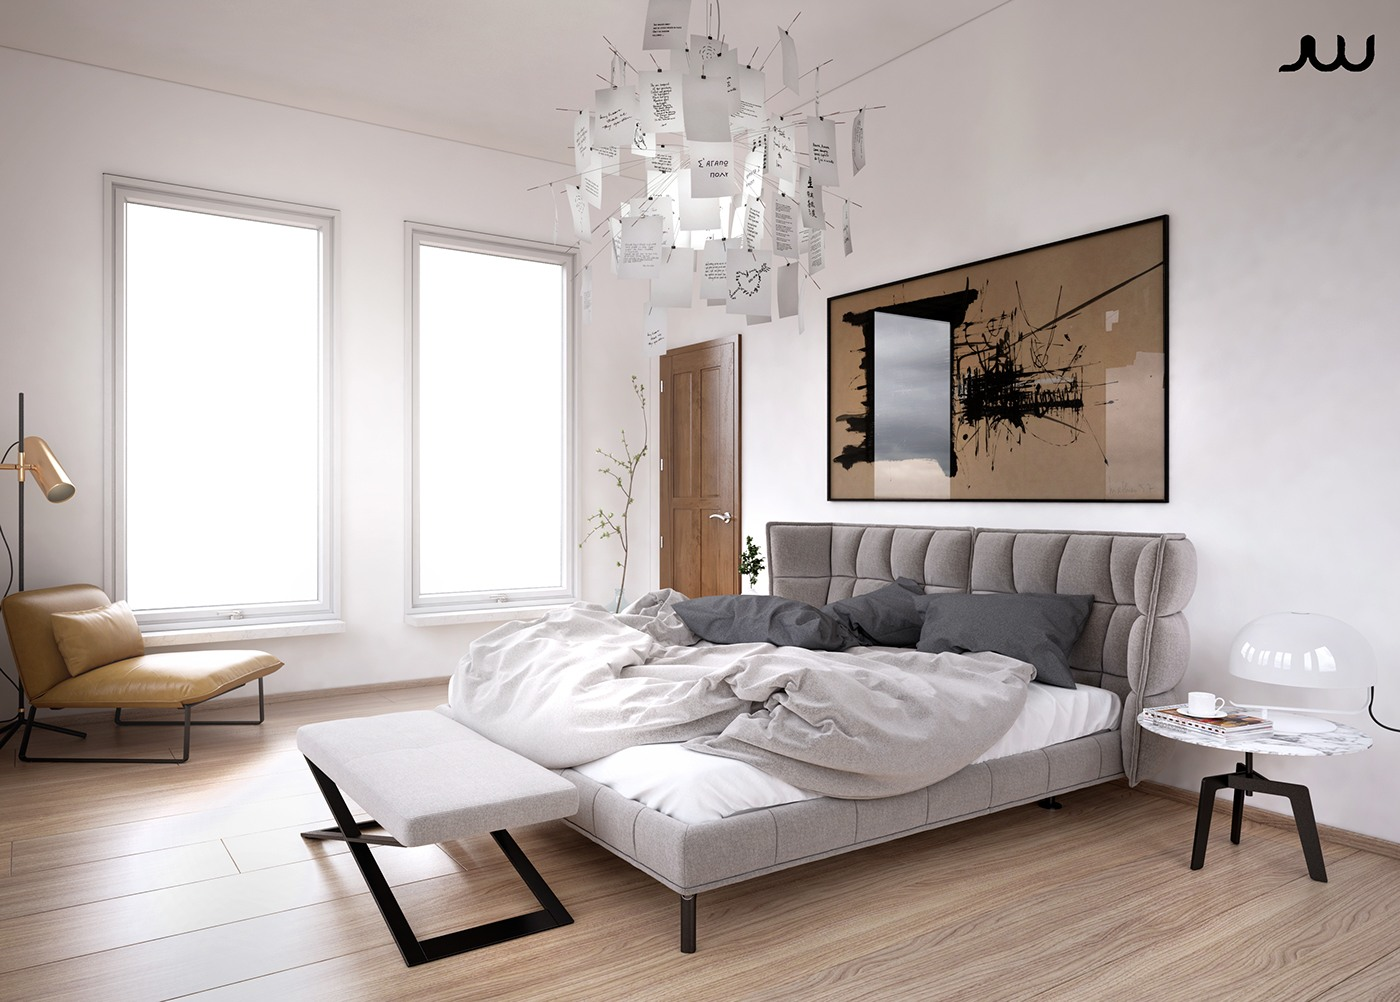 Ultra luxury apartment design - Decorate bedroom apartment ...